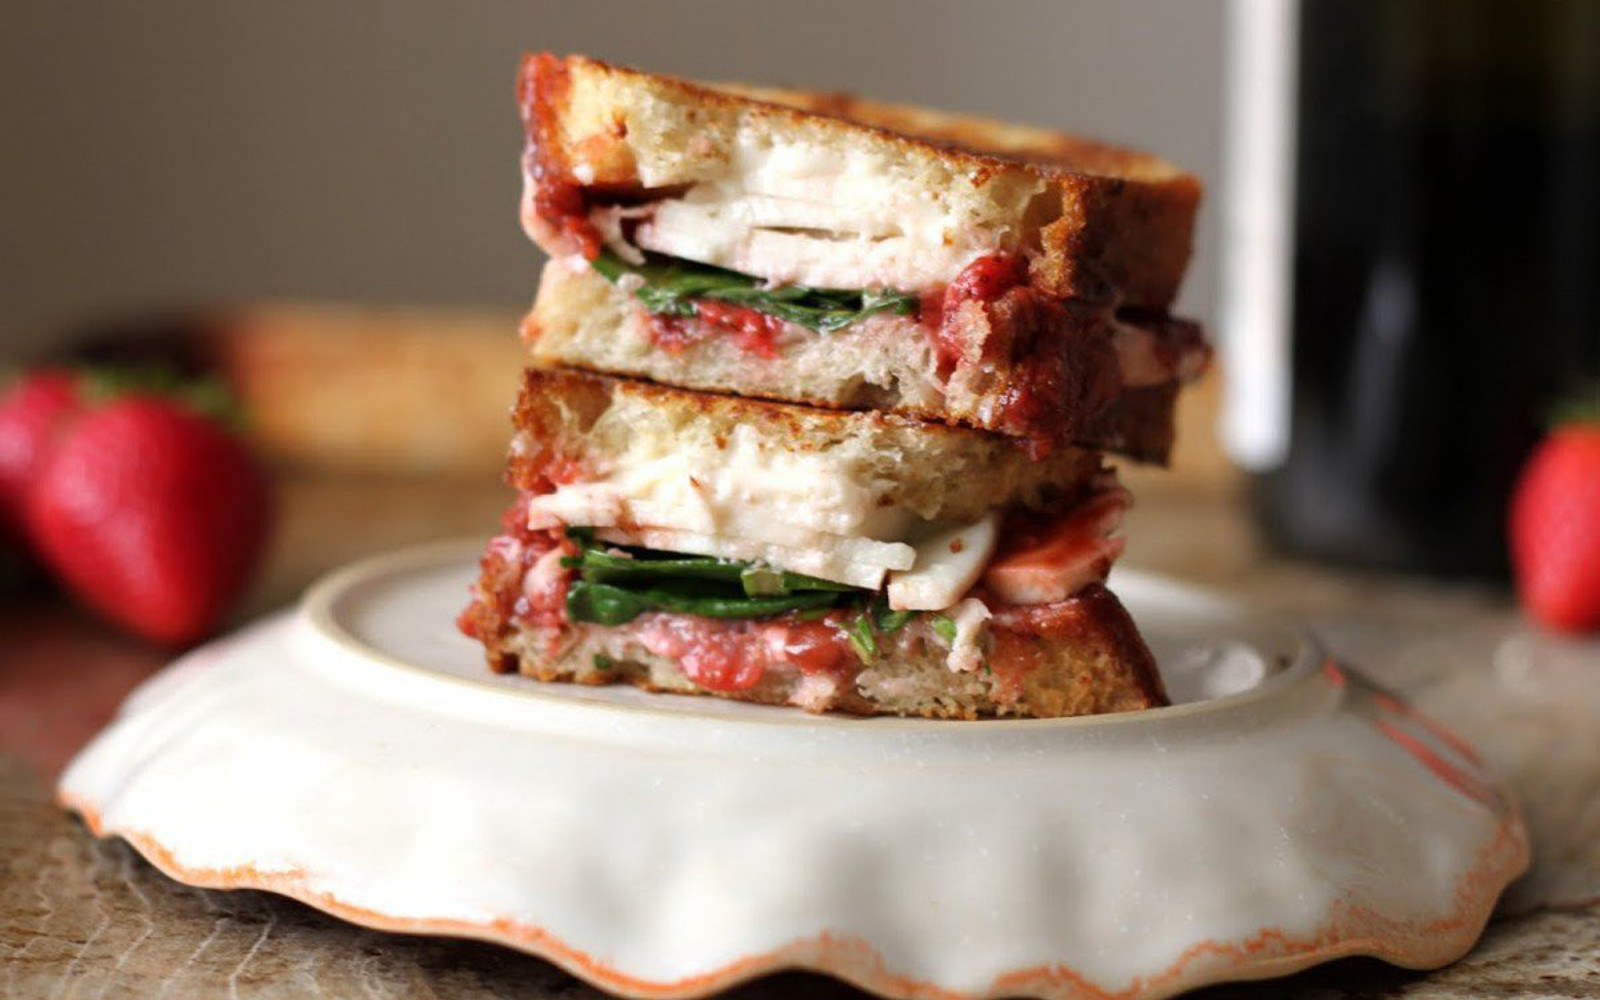 10 Melty, Stretchy Grilled Cheese Sandwiches That are Dairy-Free